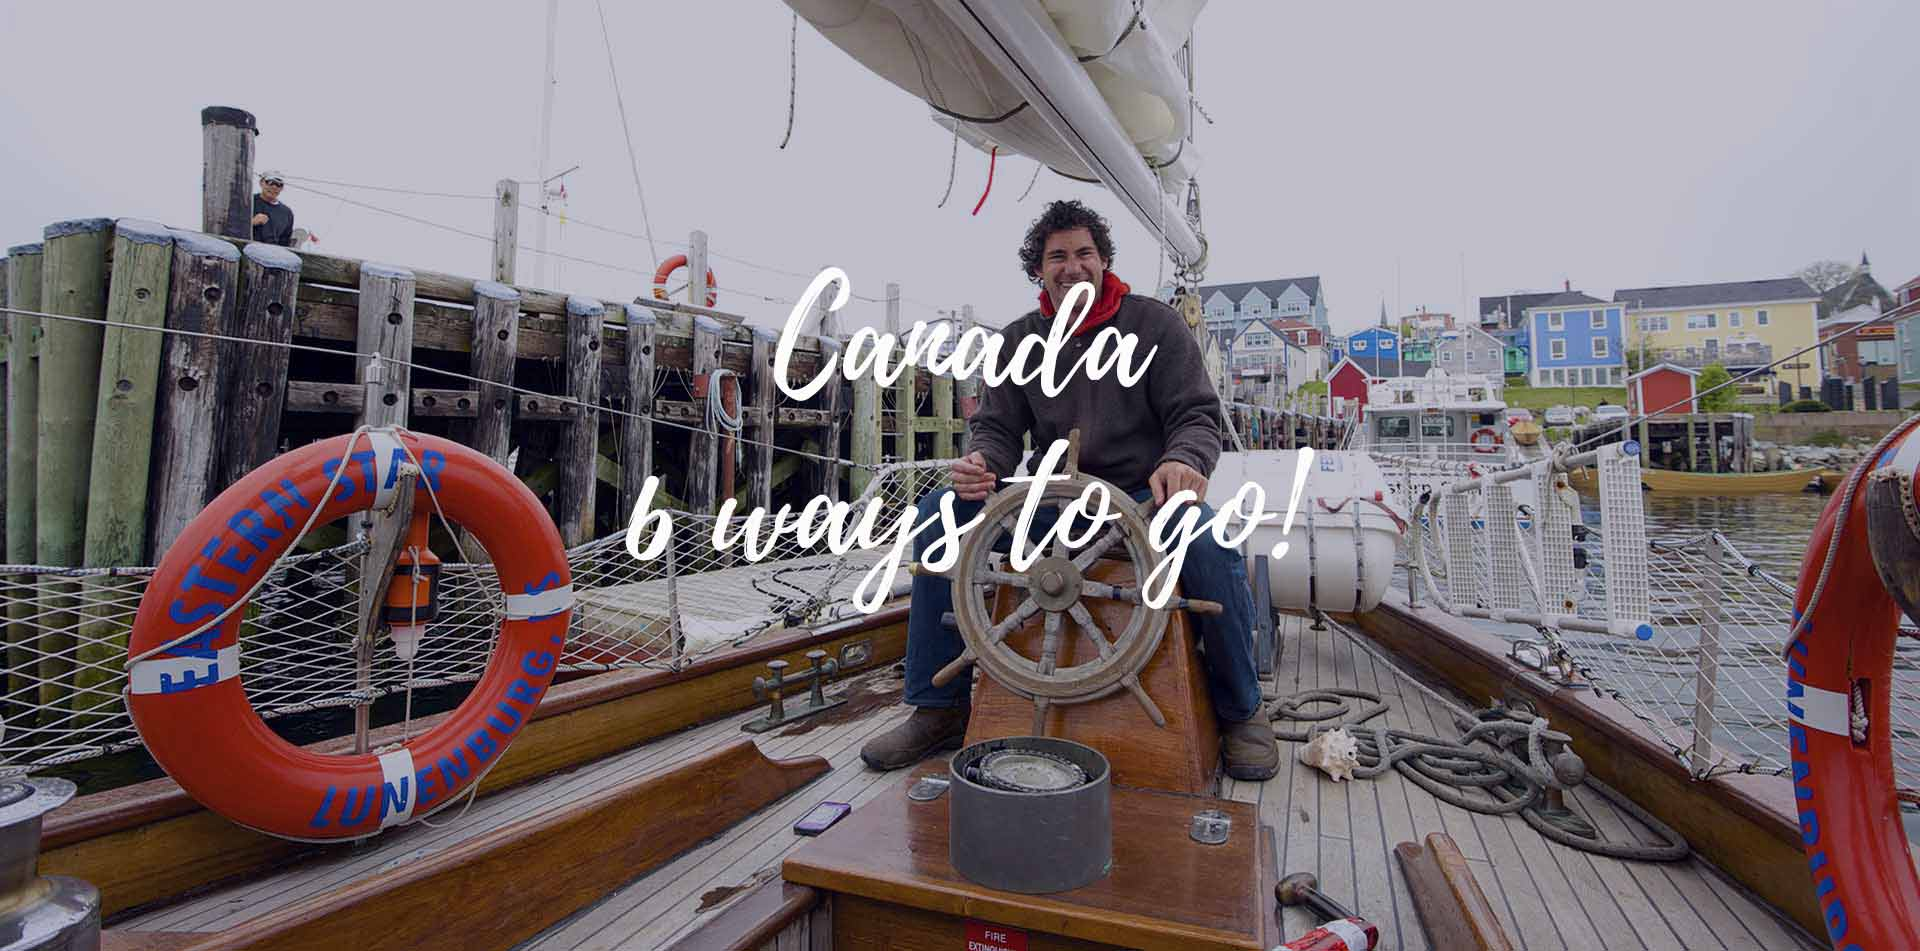 North America Canada 6 ways to go Nova Scotia Lunenberg wood sailboat man smiling steering - luxury vacation destinations